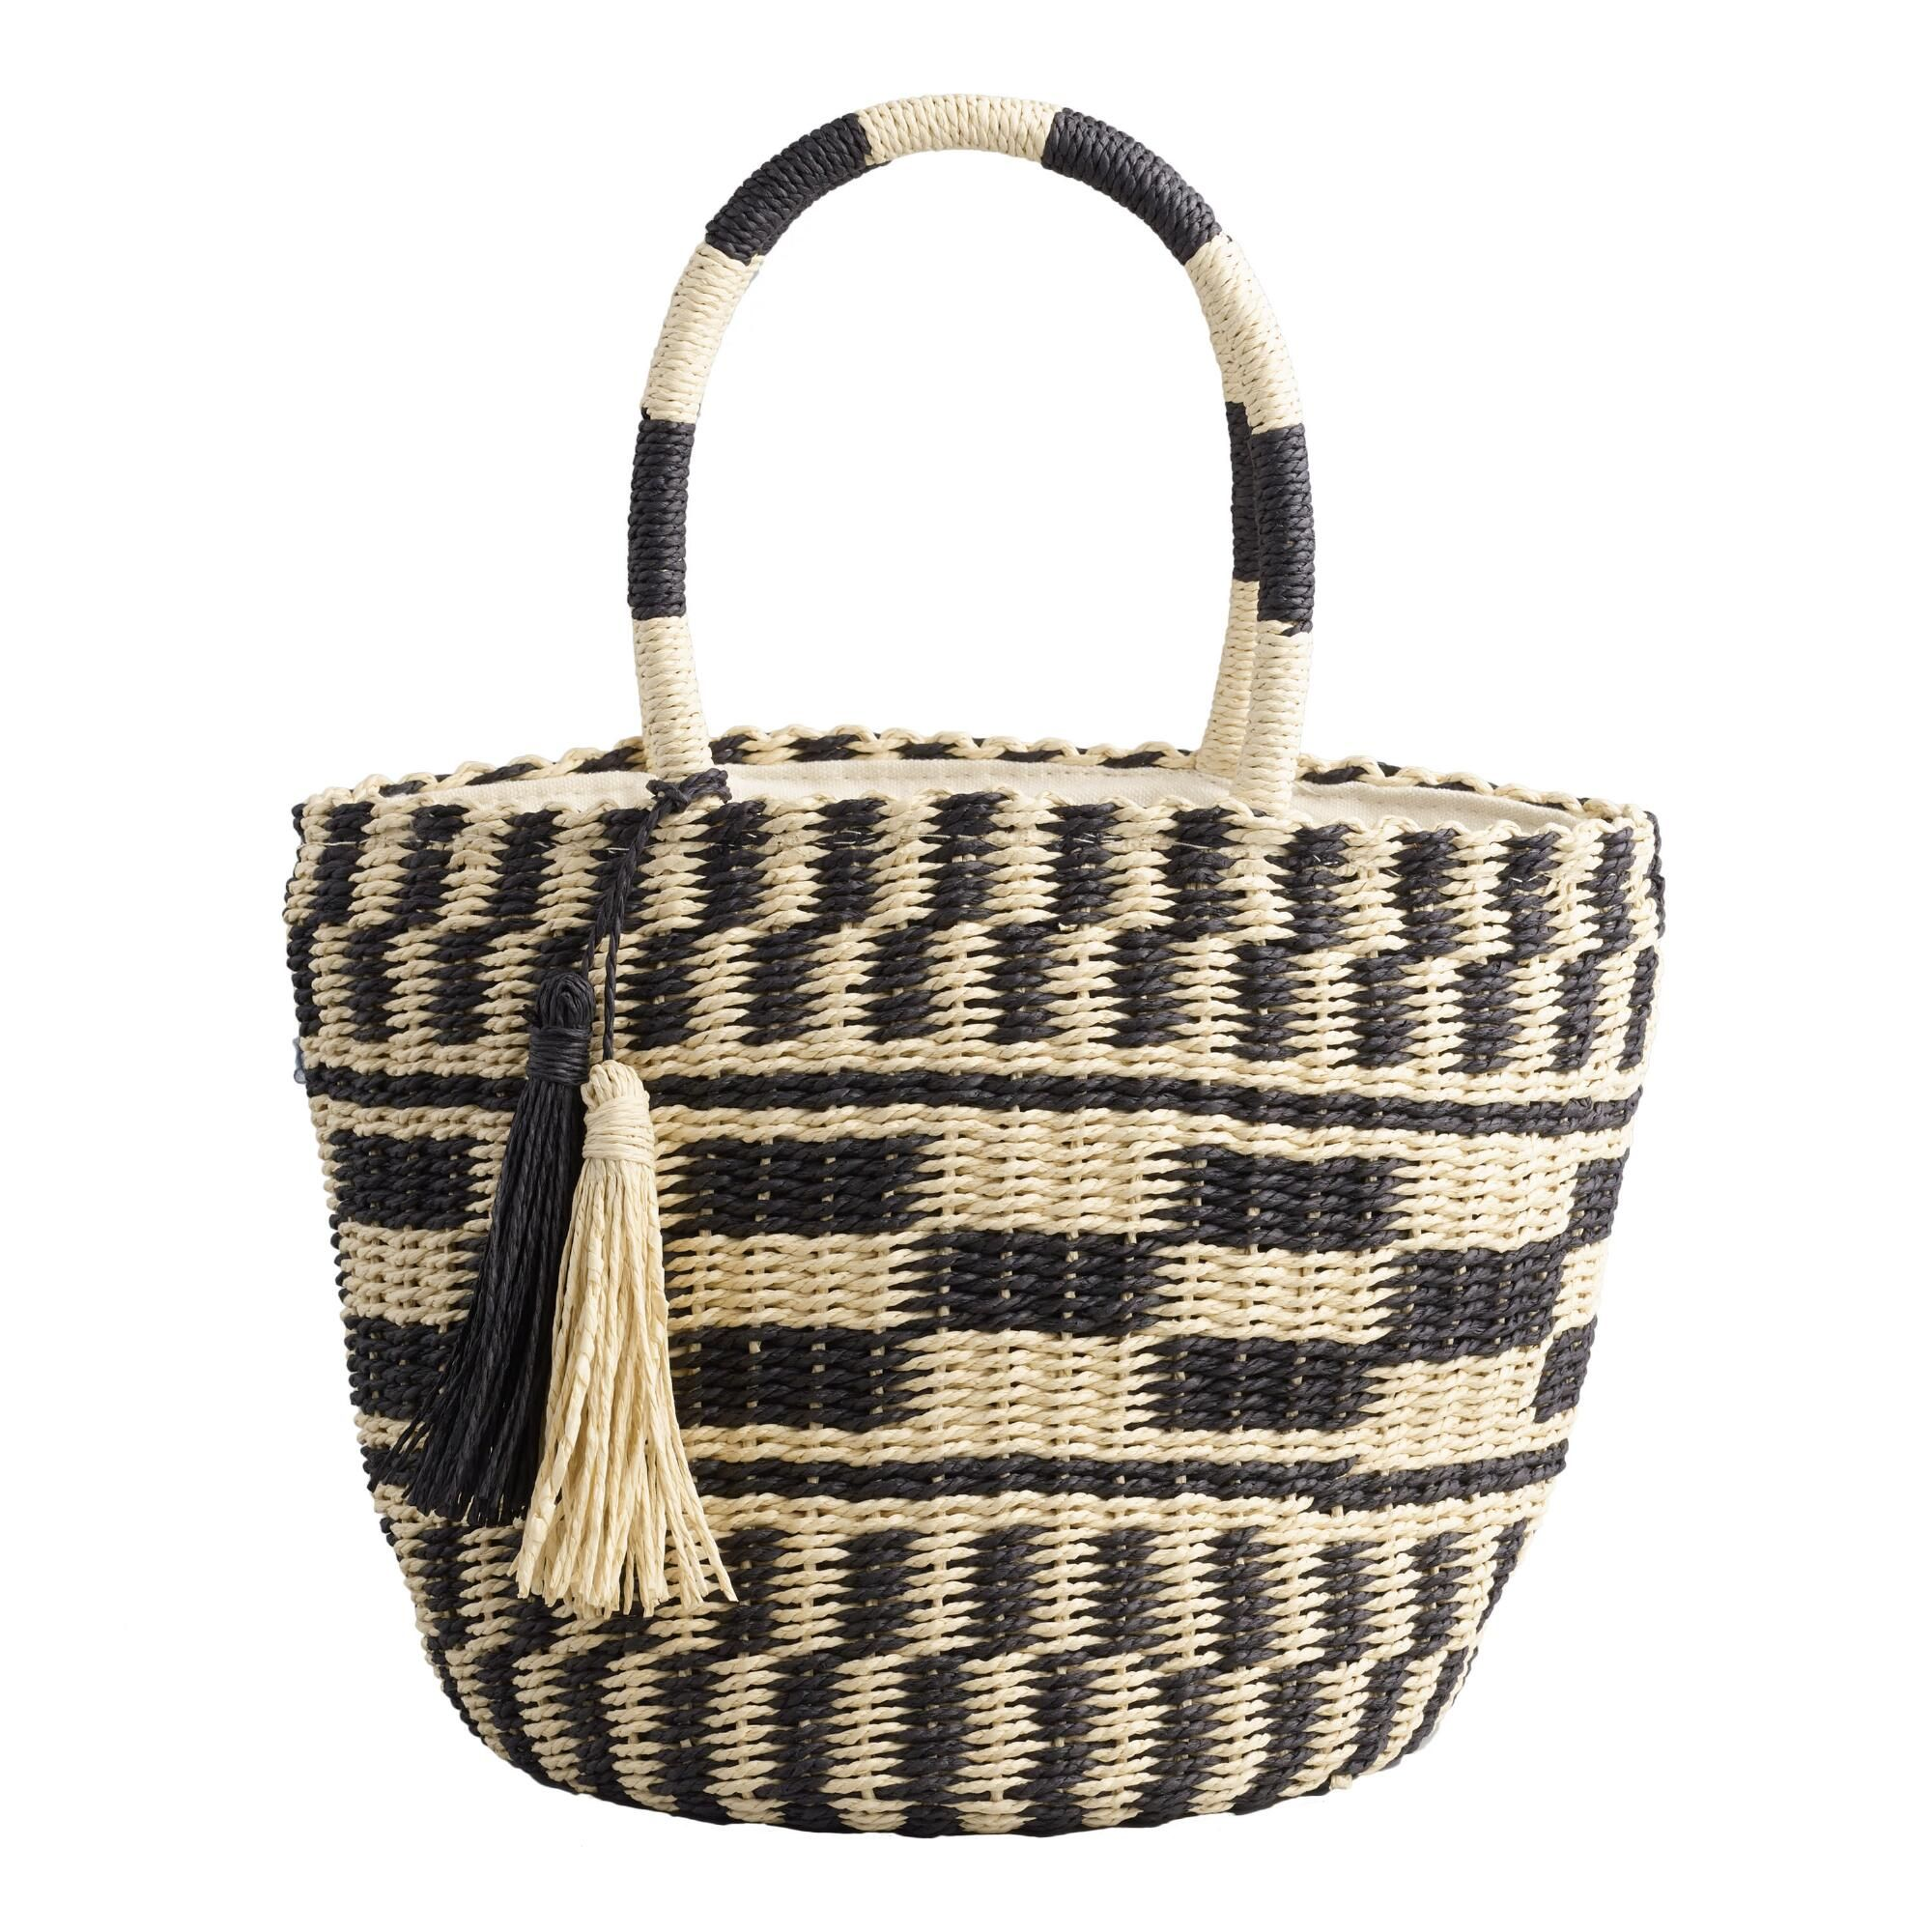 2e4ad9fd582 Tan and Black Checkered Straw Tote Bag by World Market   Products in ...